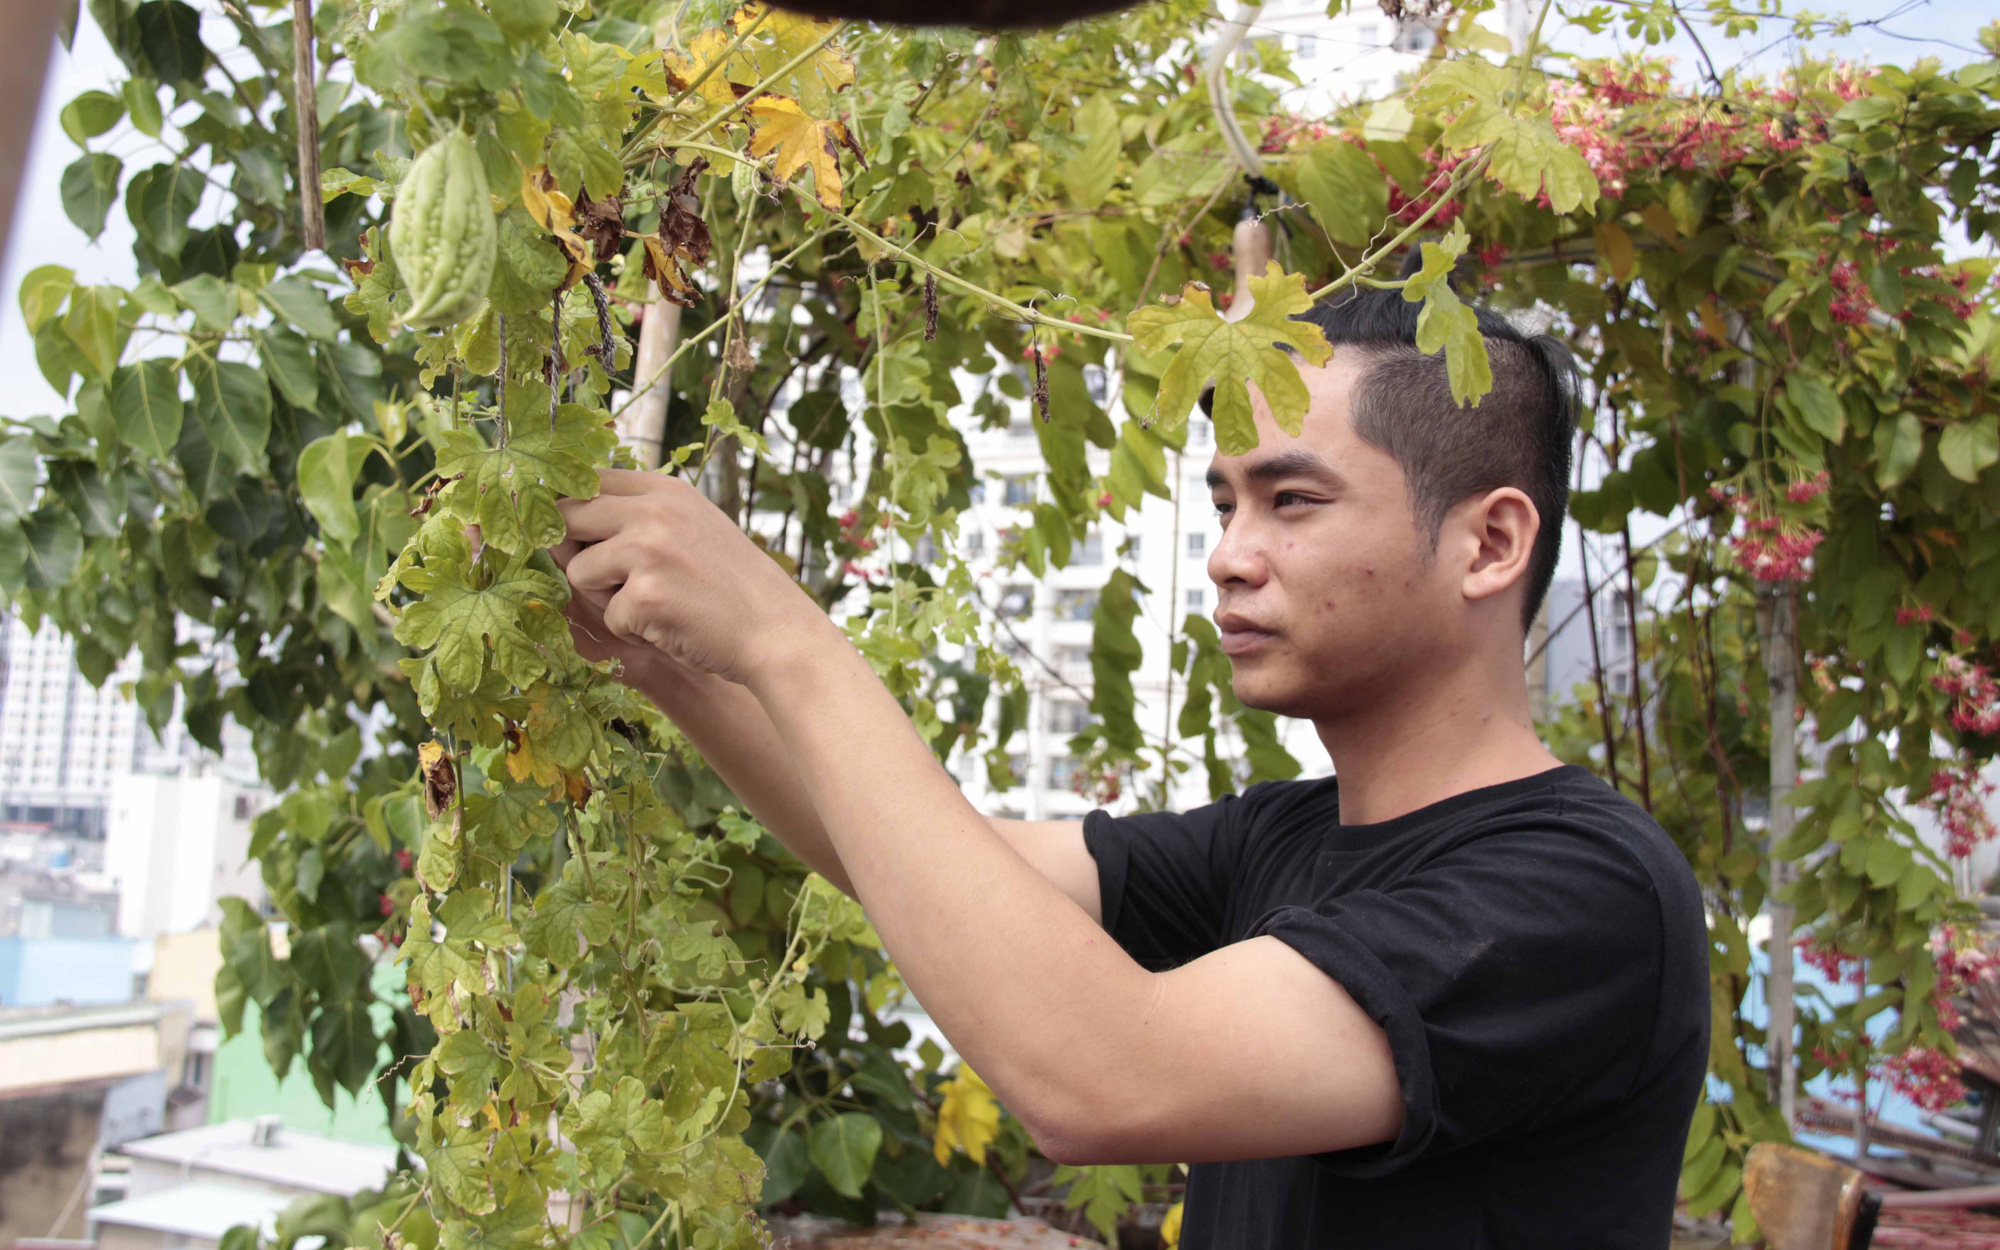 Saigonese sowing seeds of sustainable agriculture in concrete jungle